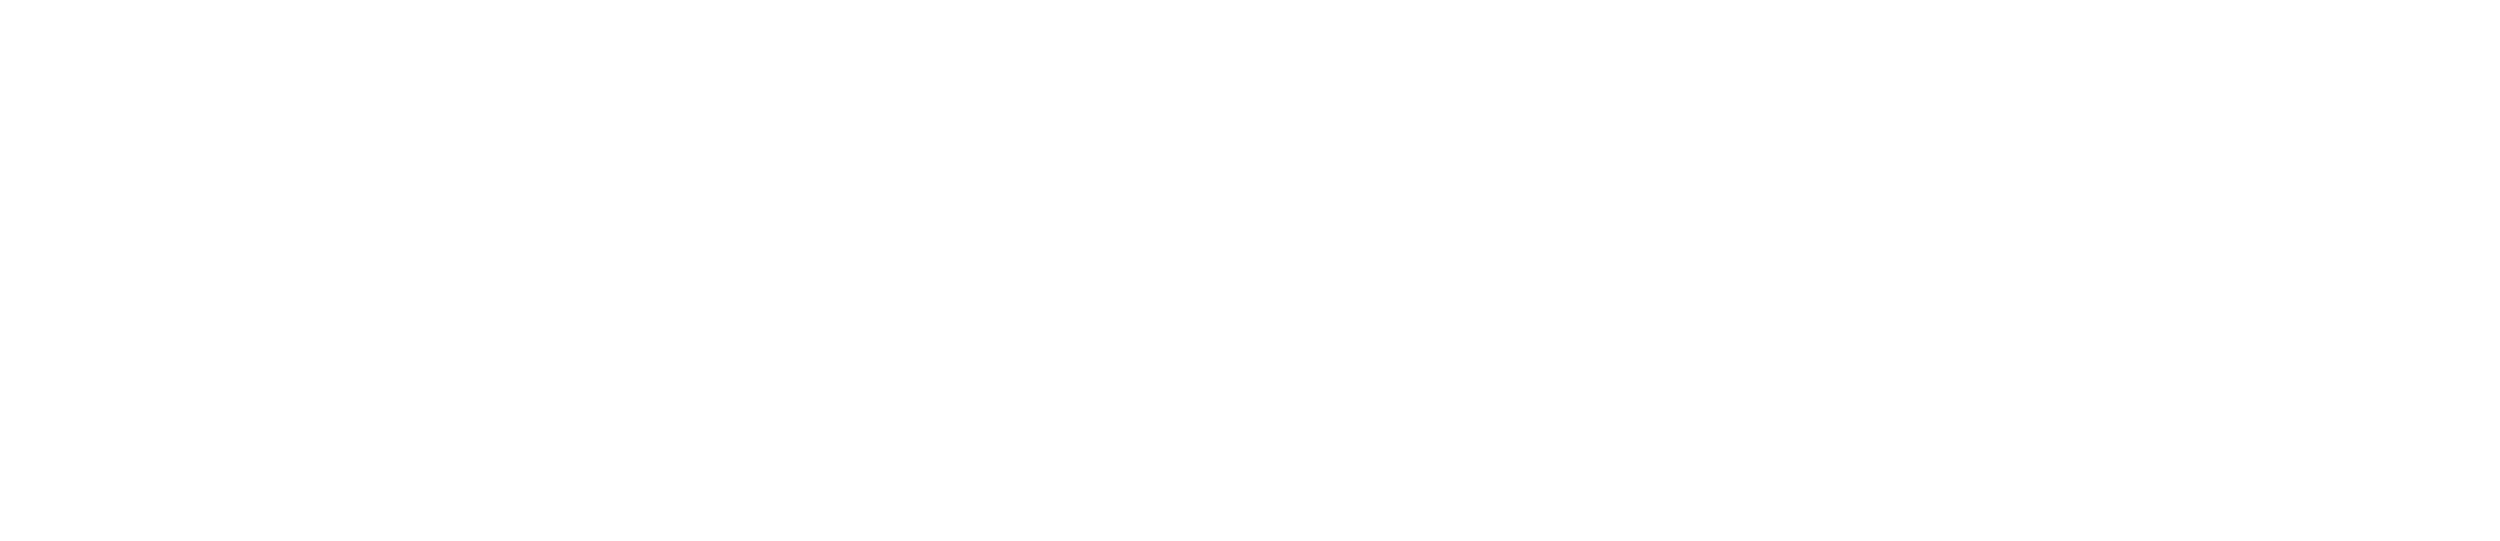 Peter Marco Logo2 - White.png